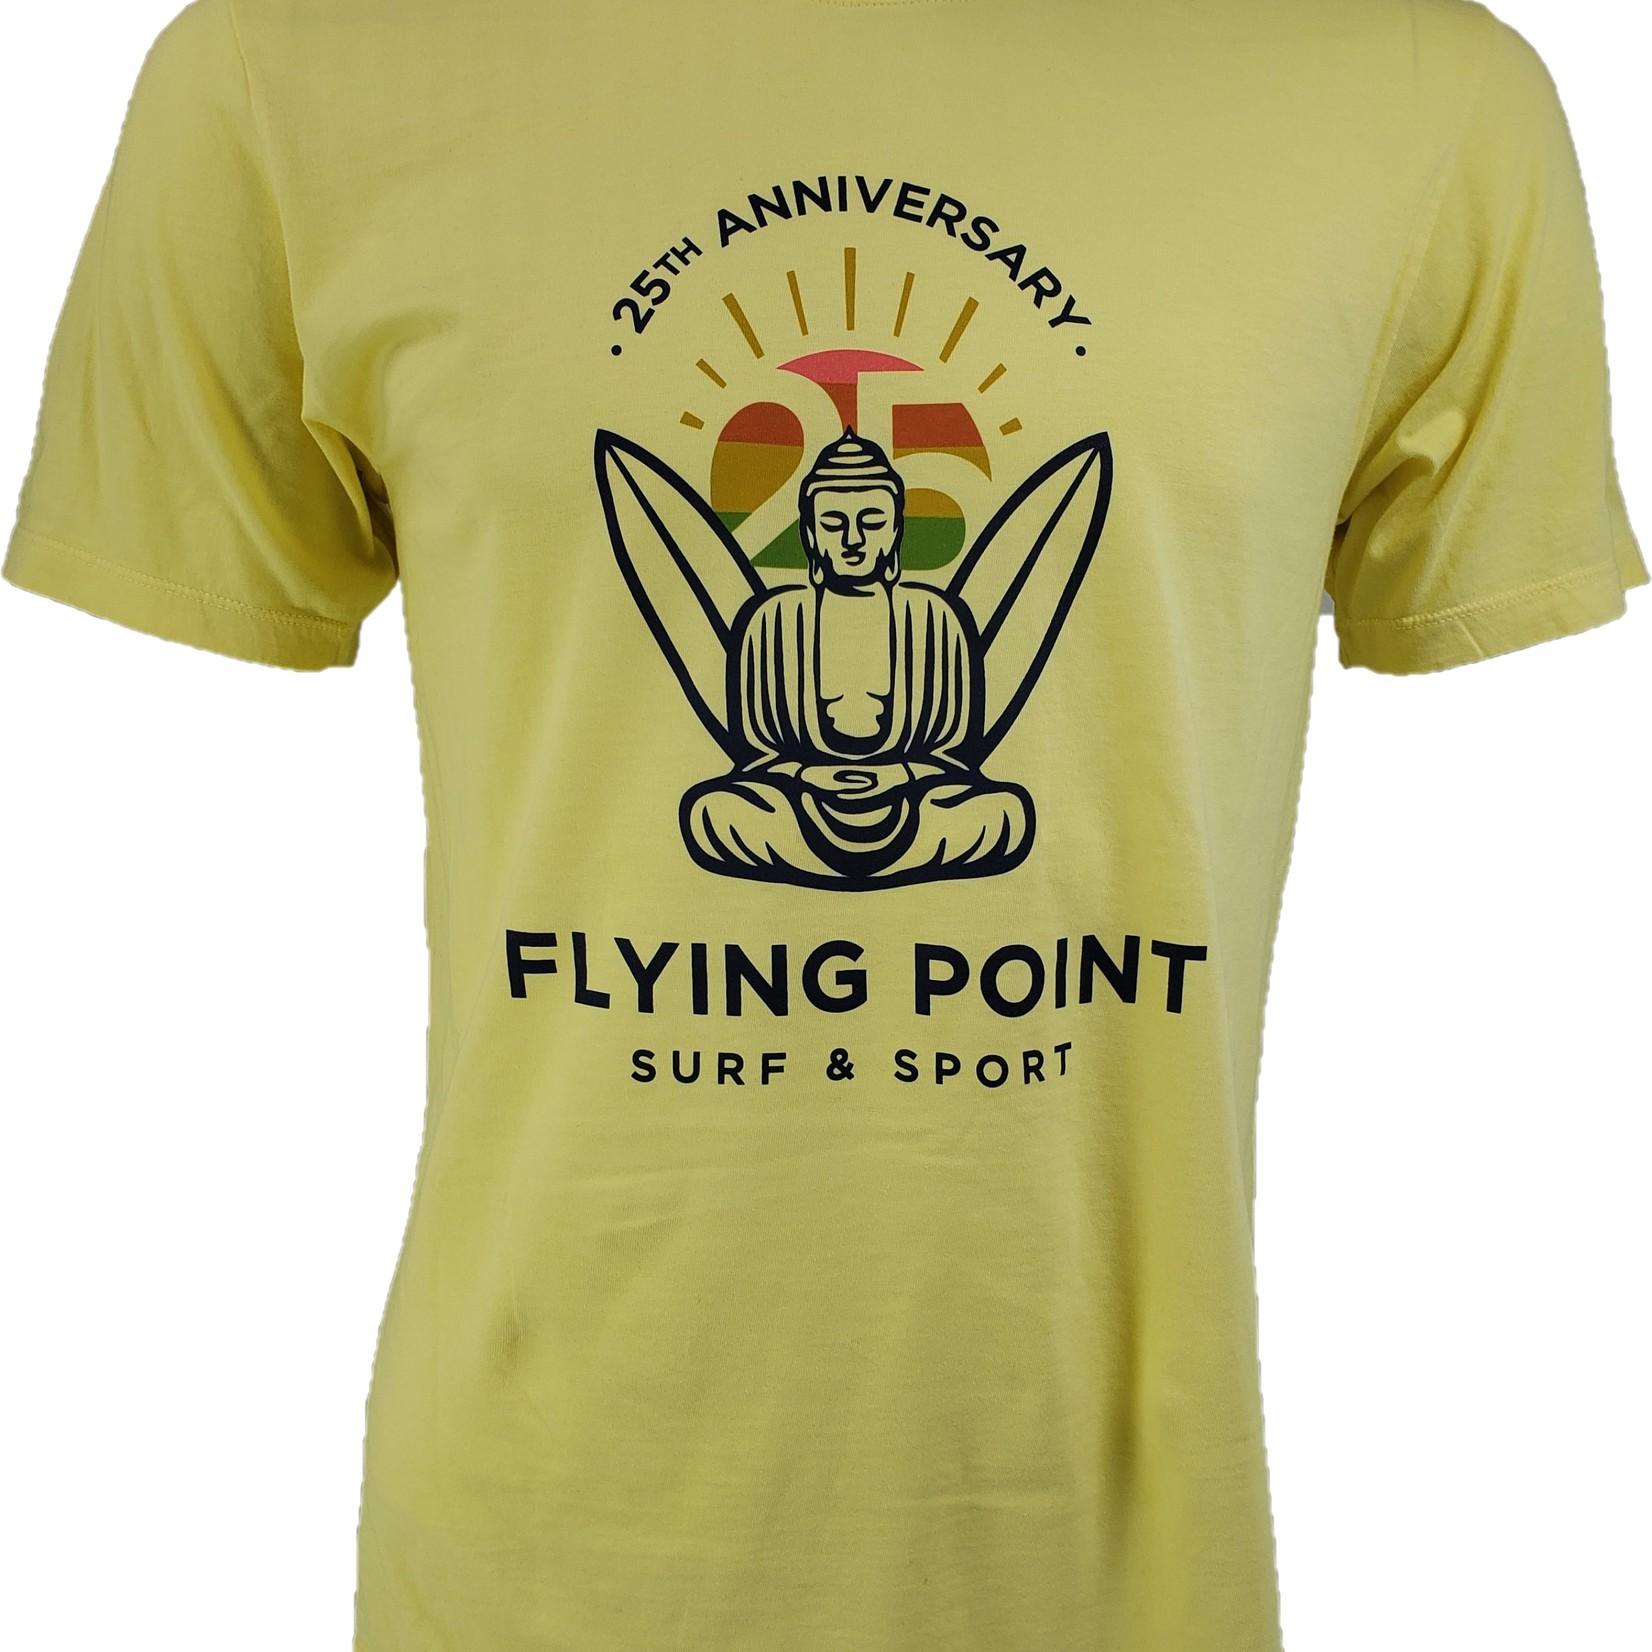 Flying Point 25th Anniversary Tee